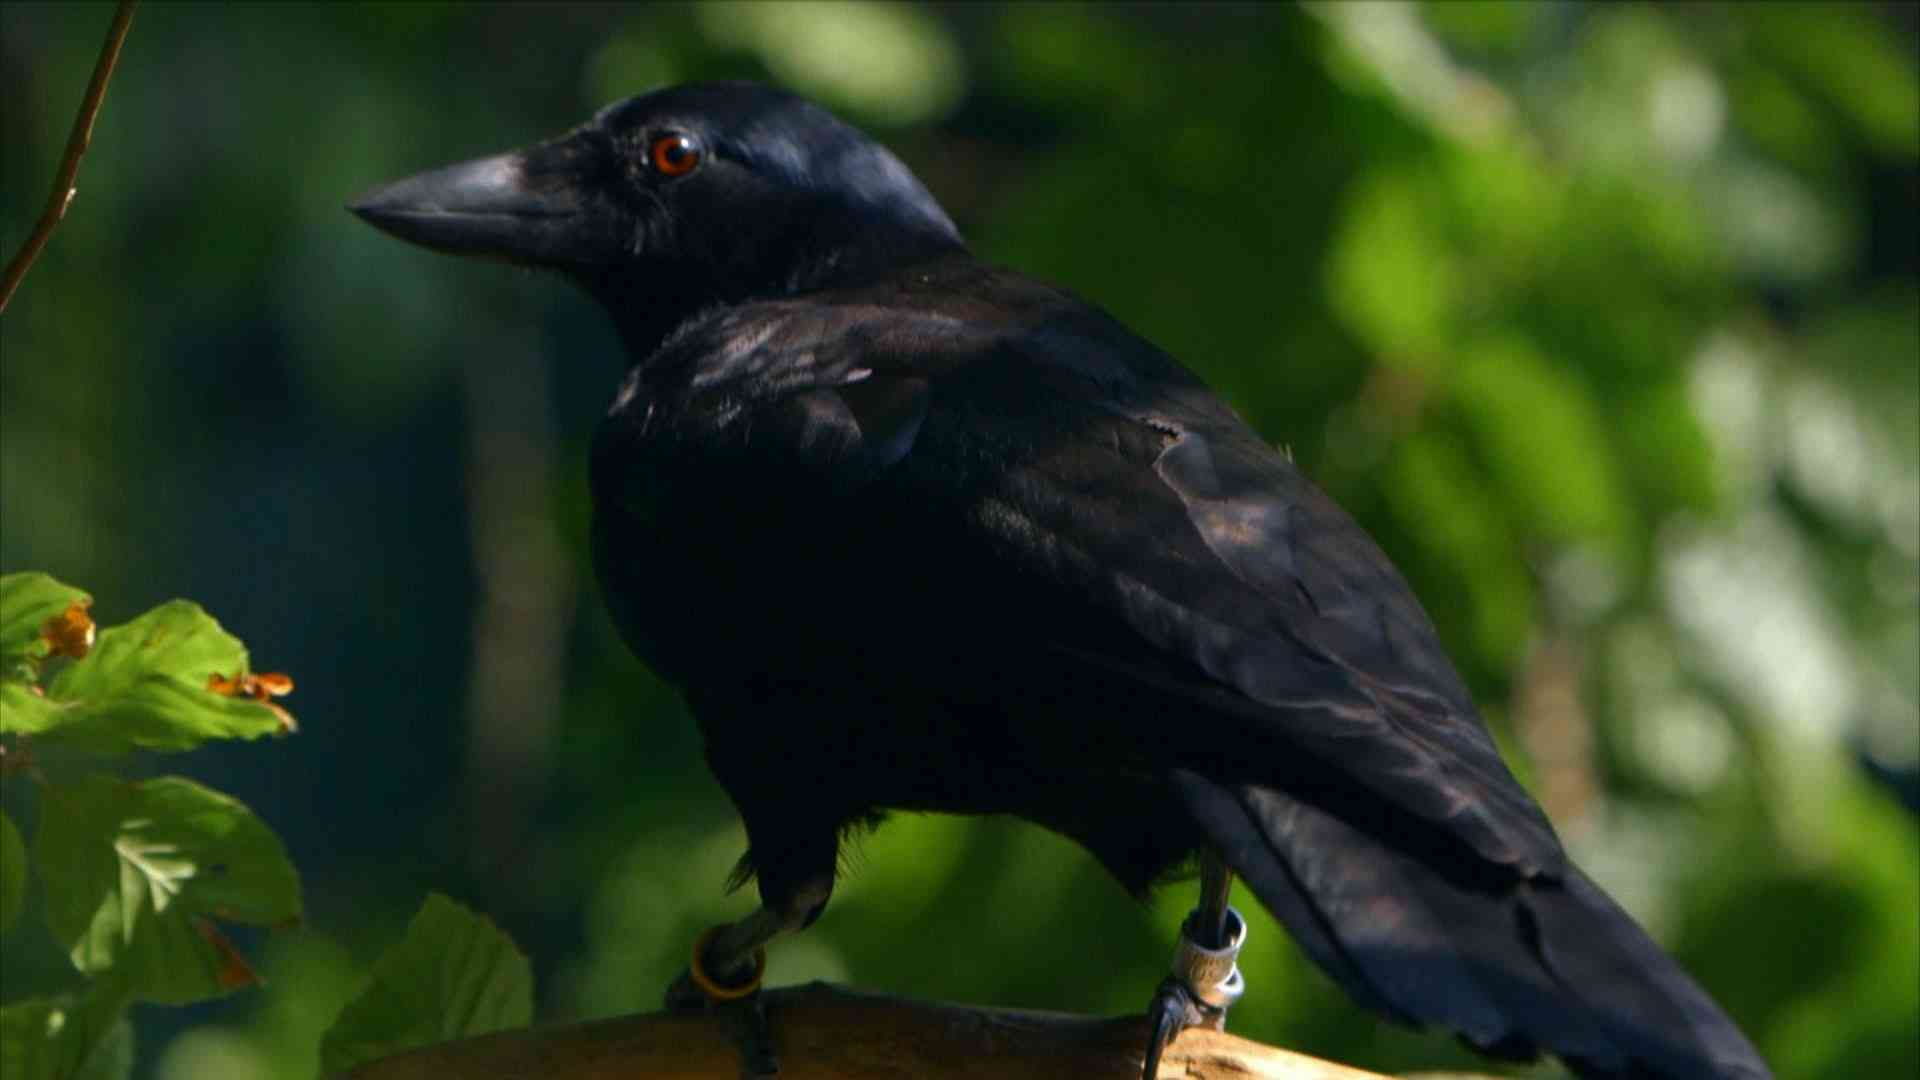 Are crows the ultimate problem solvers? - Inside the Animal Mind: Episode 2 - BBC Two - YouTube